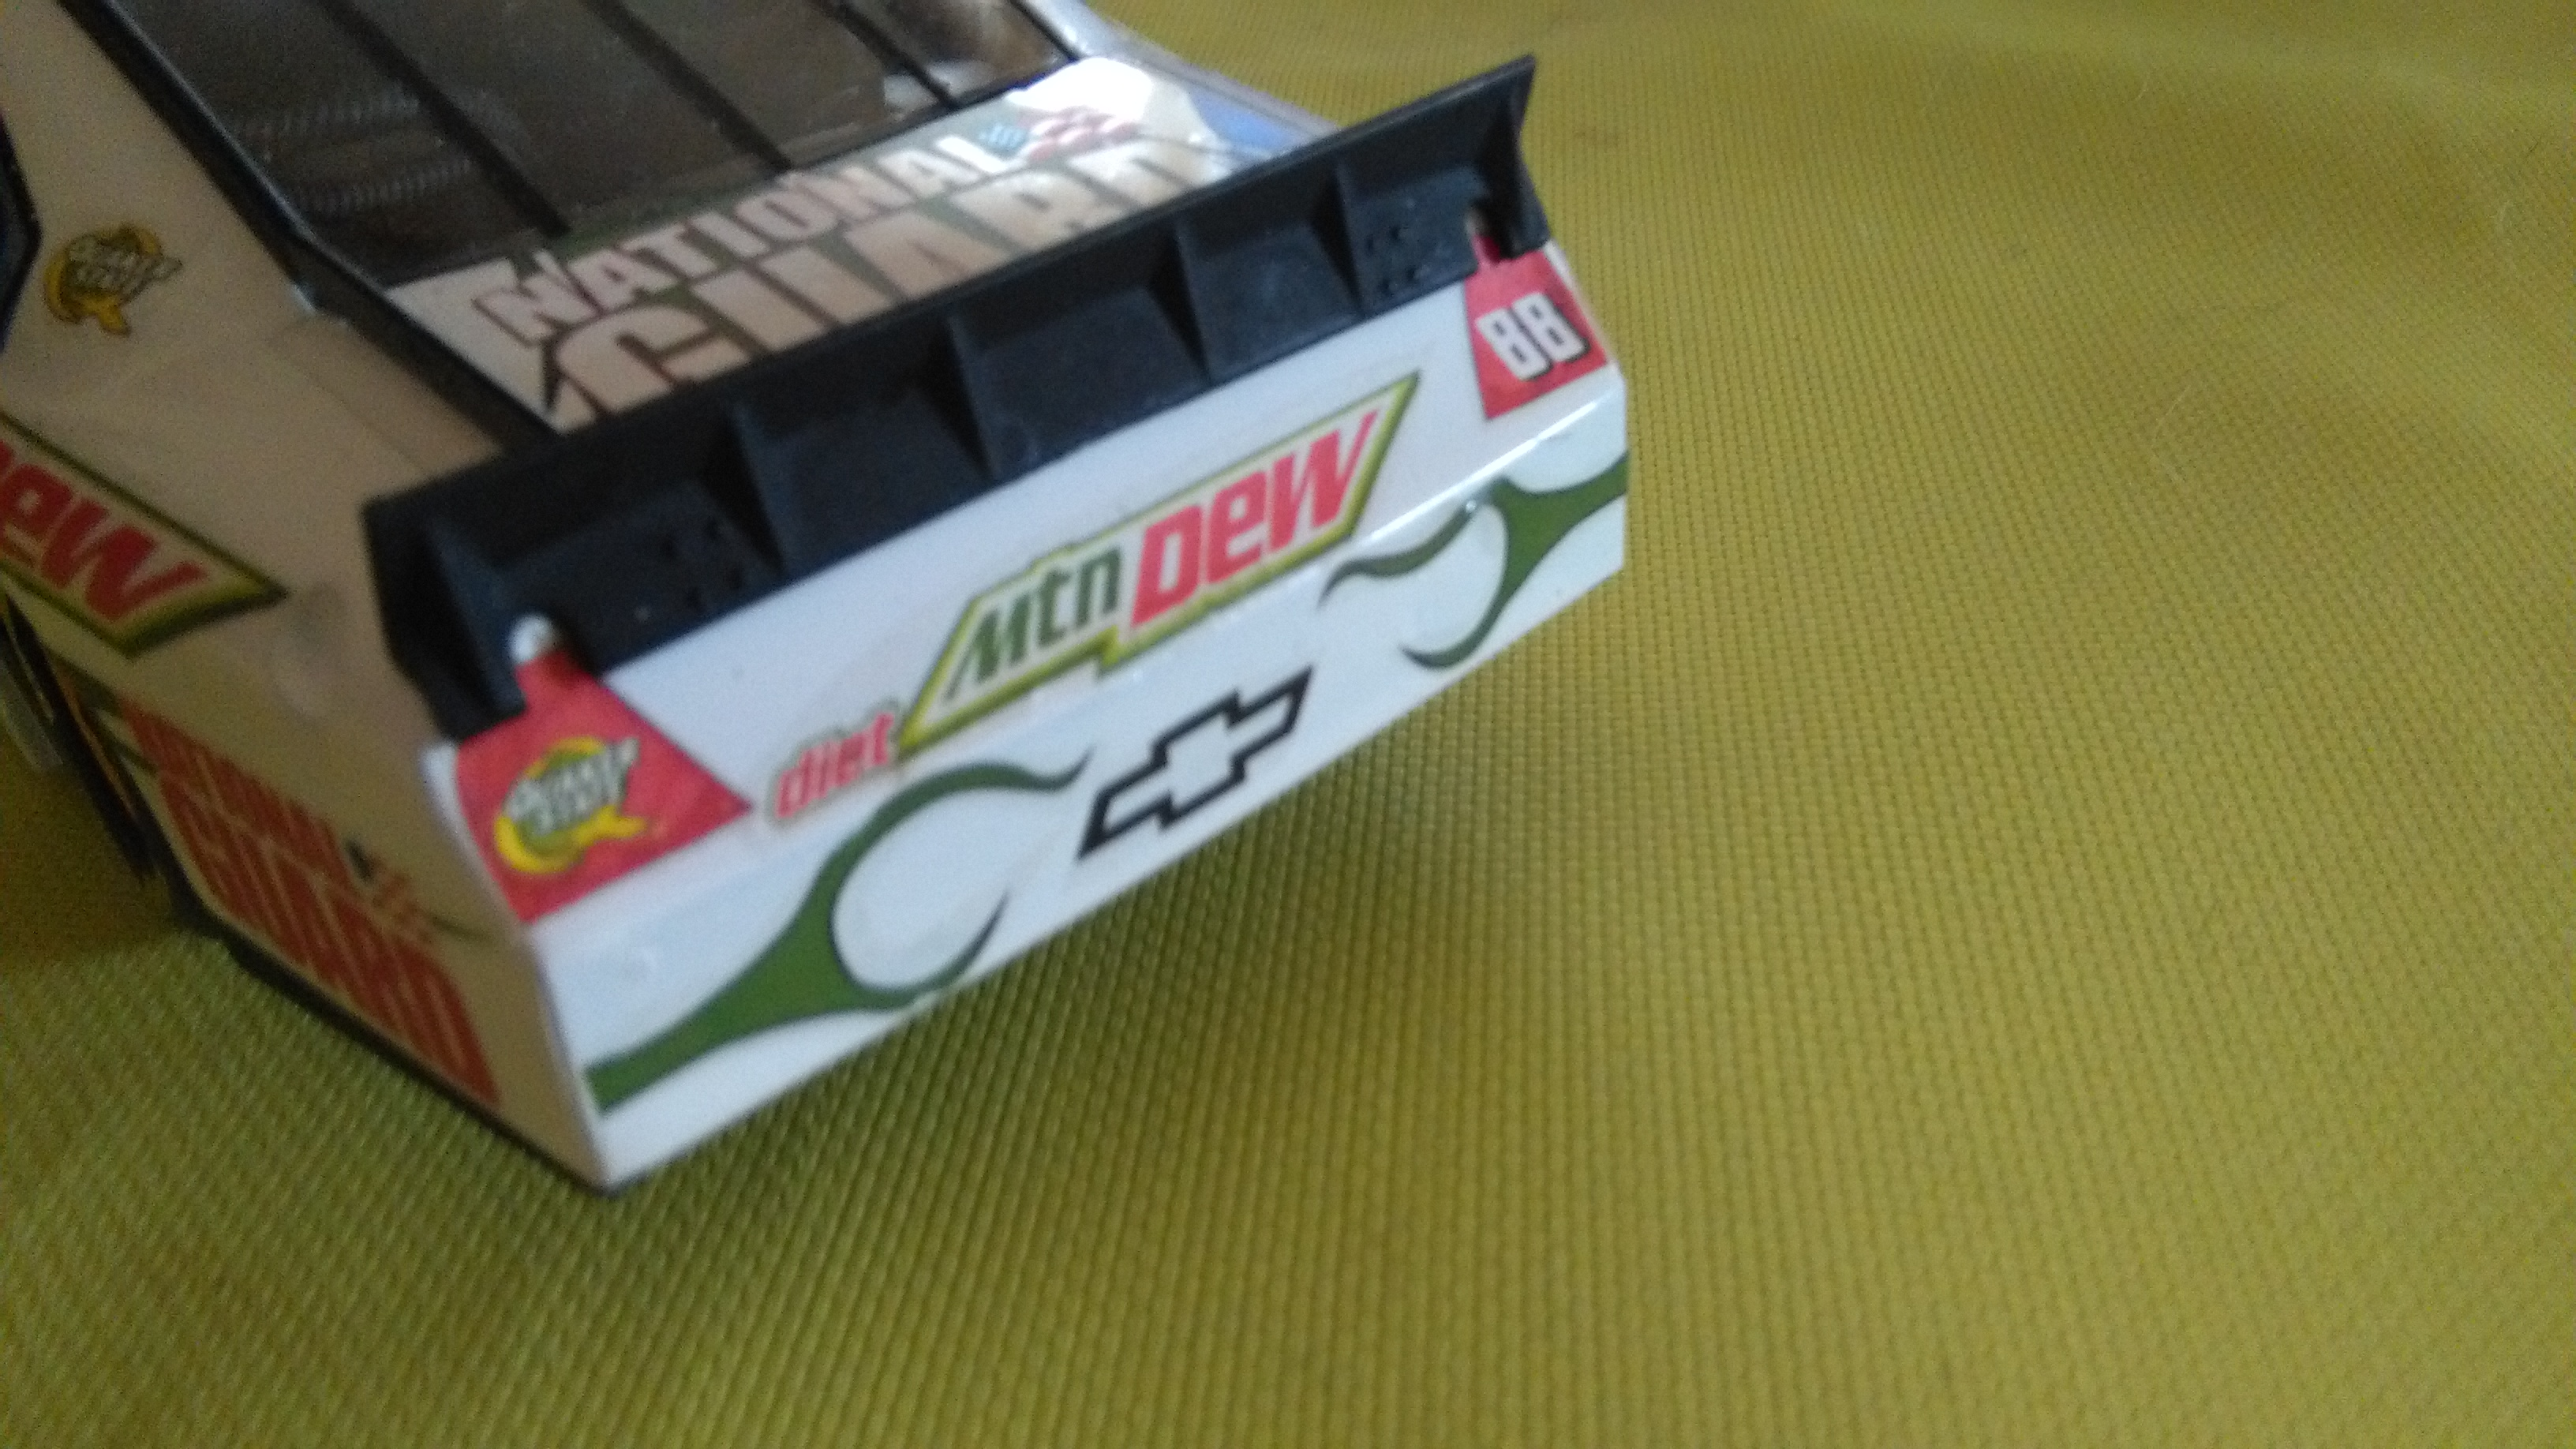 Chevy Impala 2010 #88 Earnhardt jr Mountain dew diet 827298IMG20160320150414